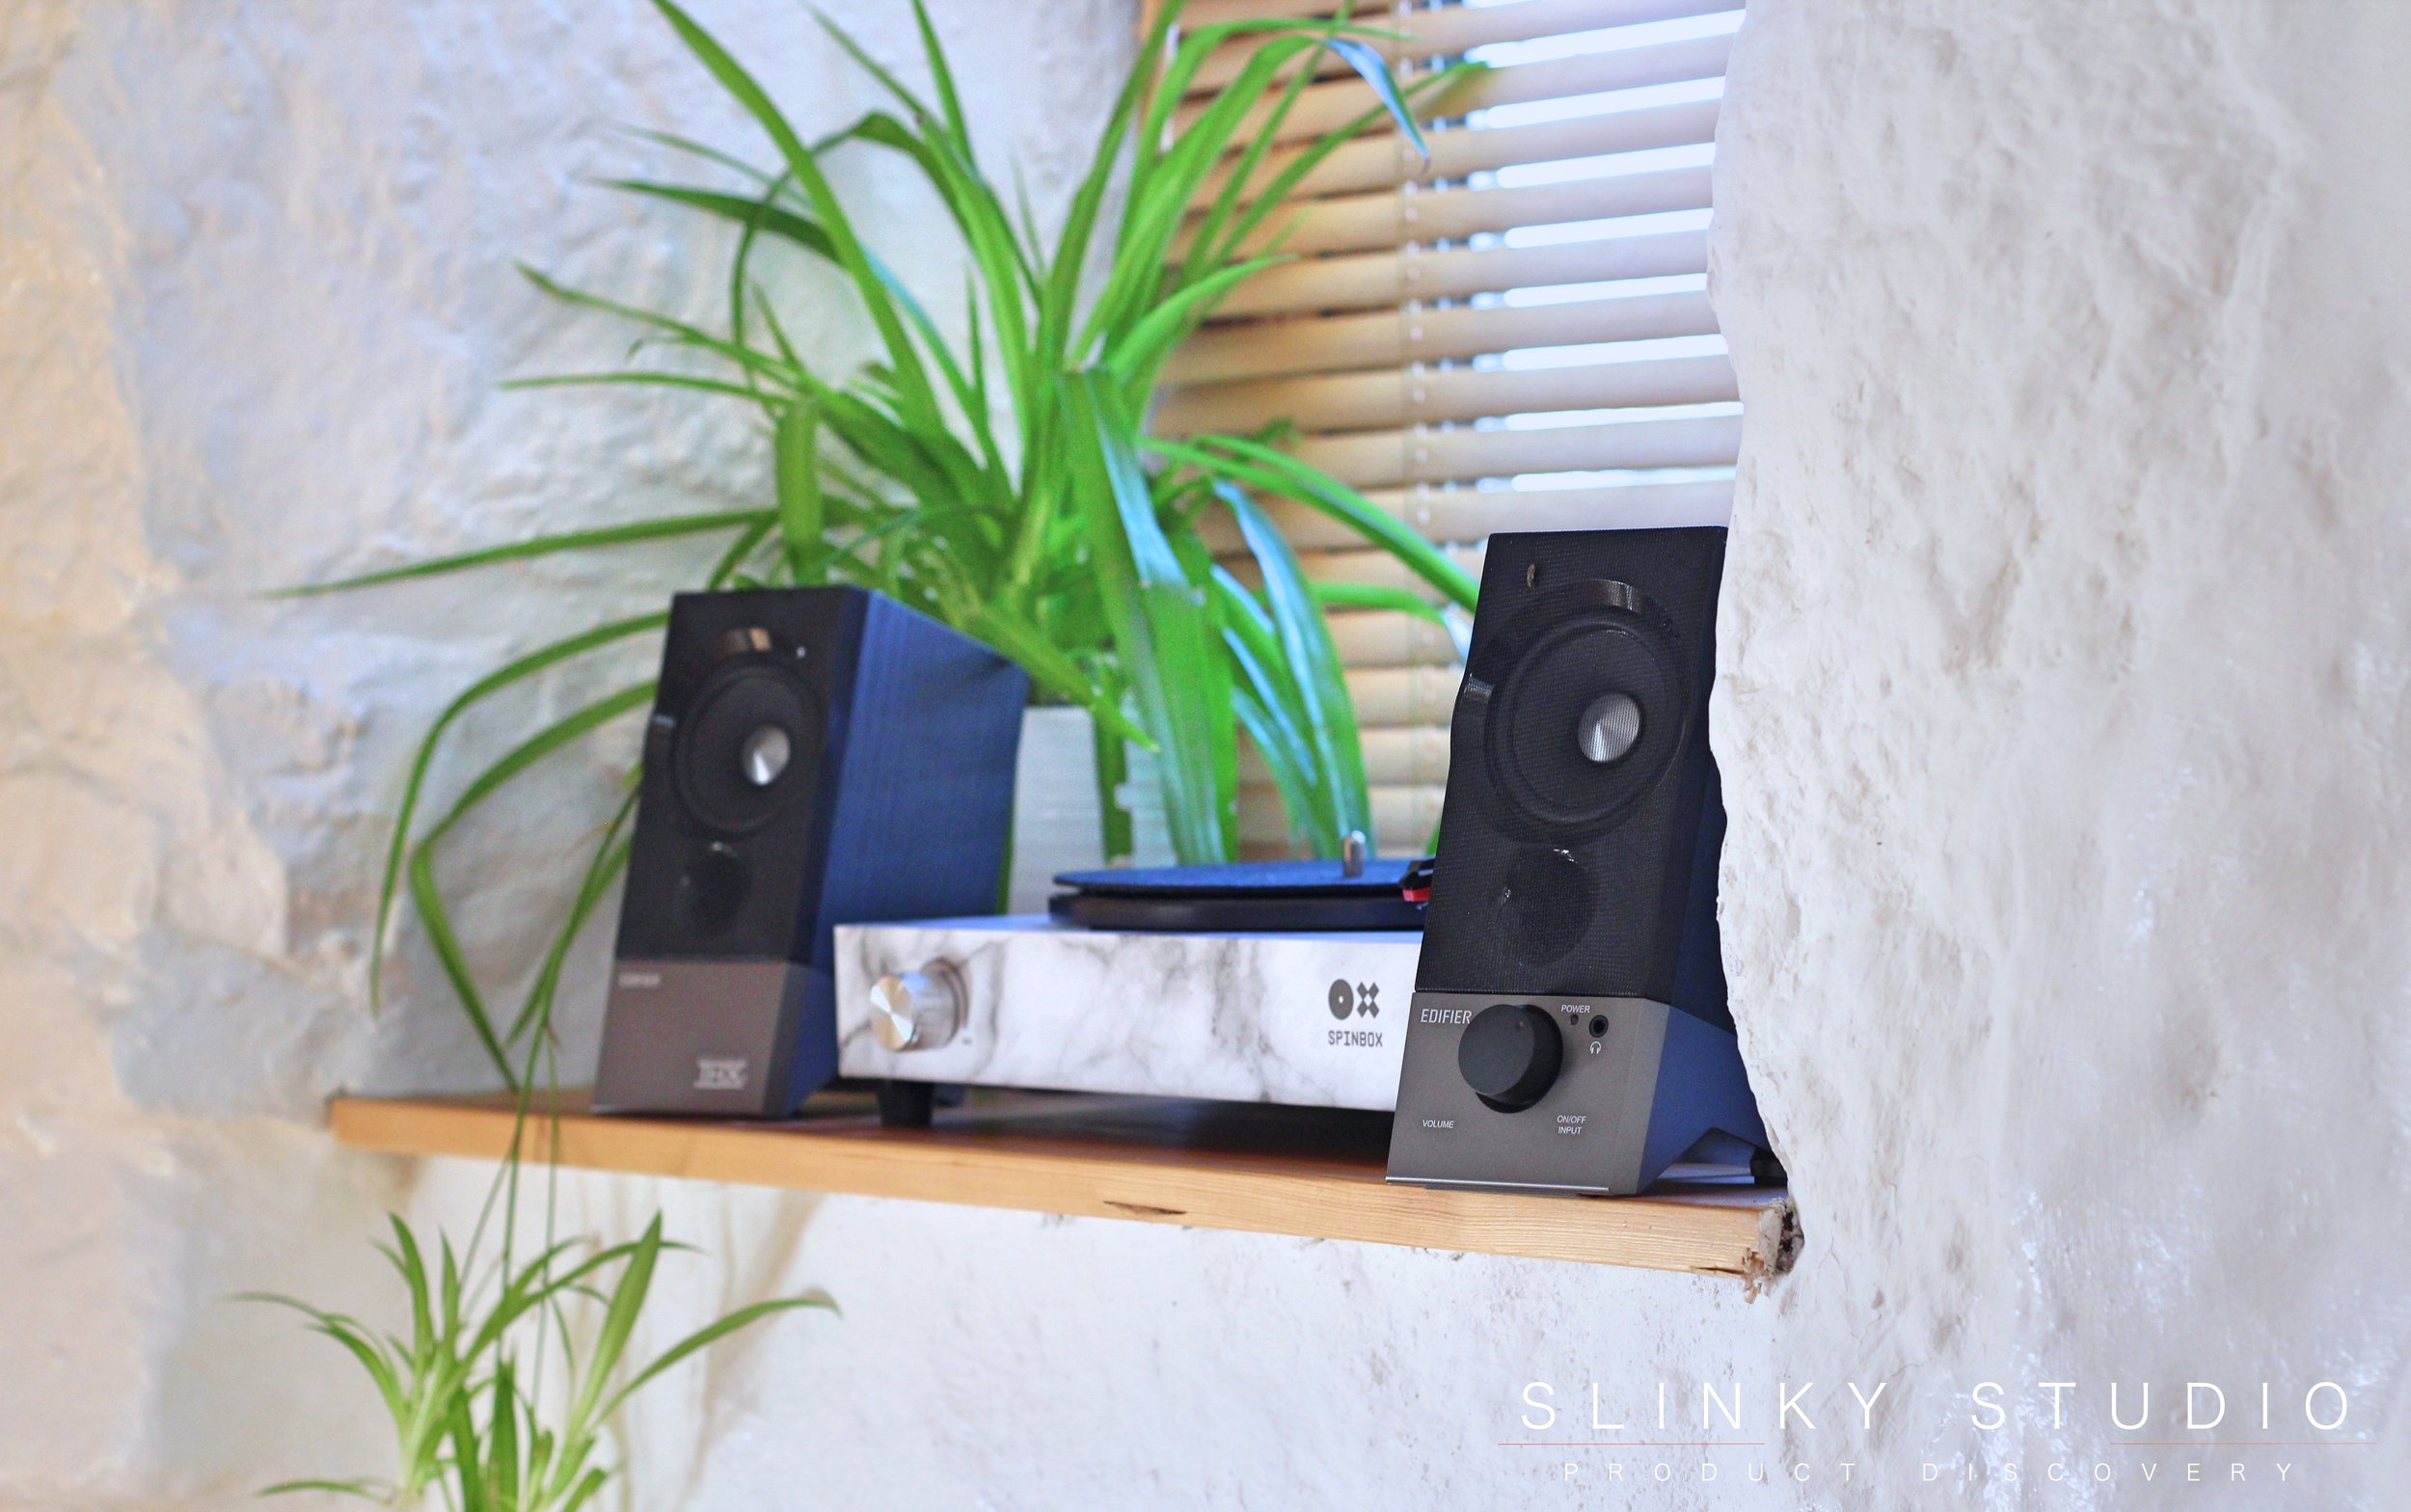 Edifier M3600D Speakers Record Player